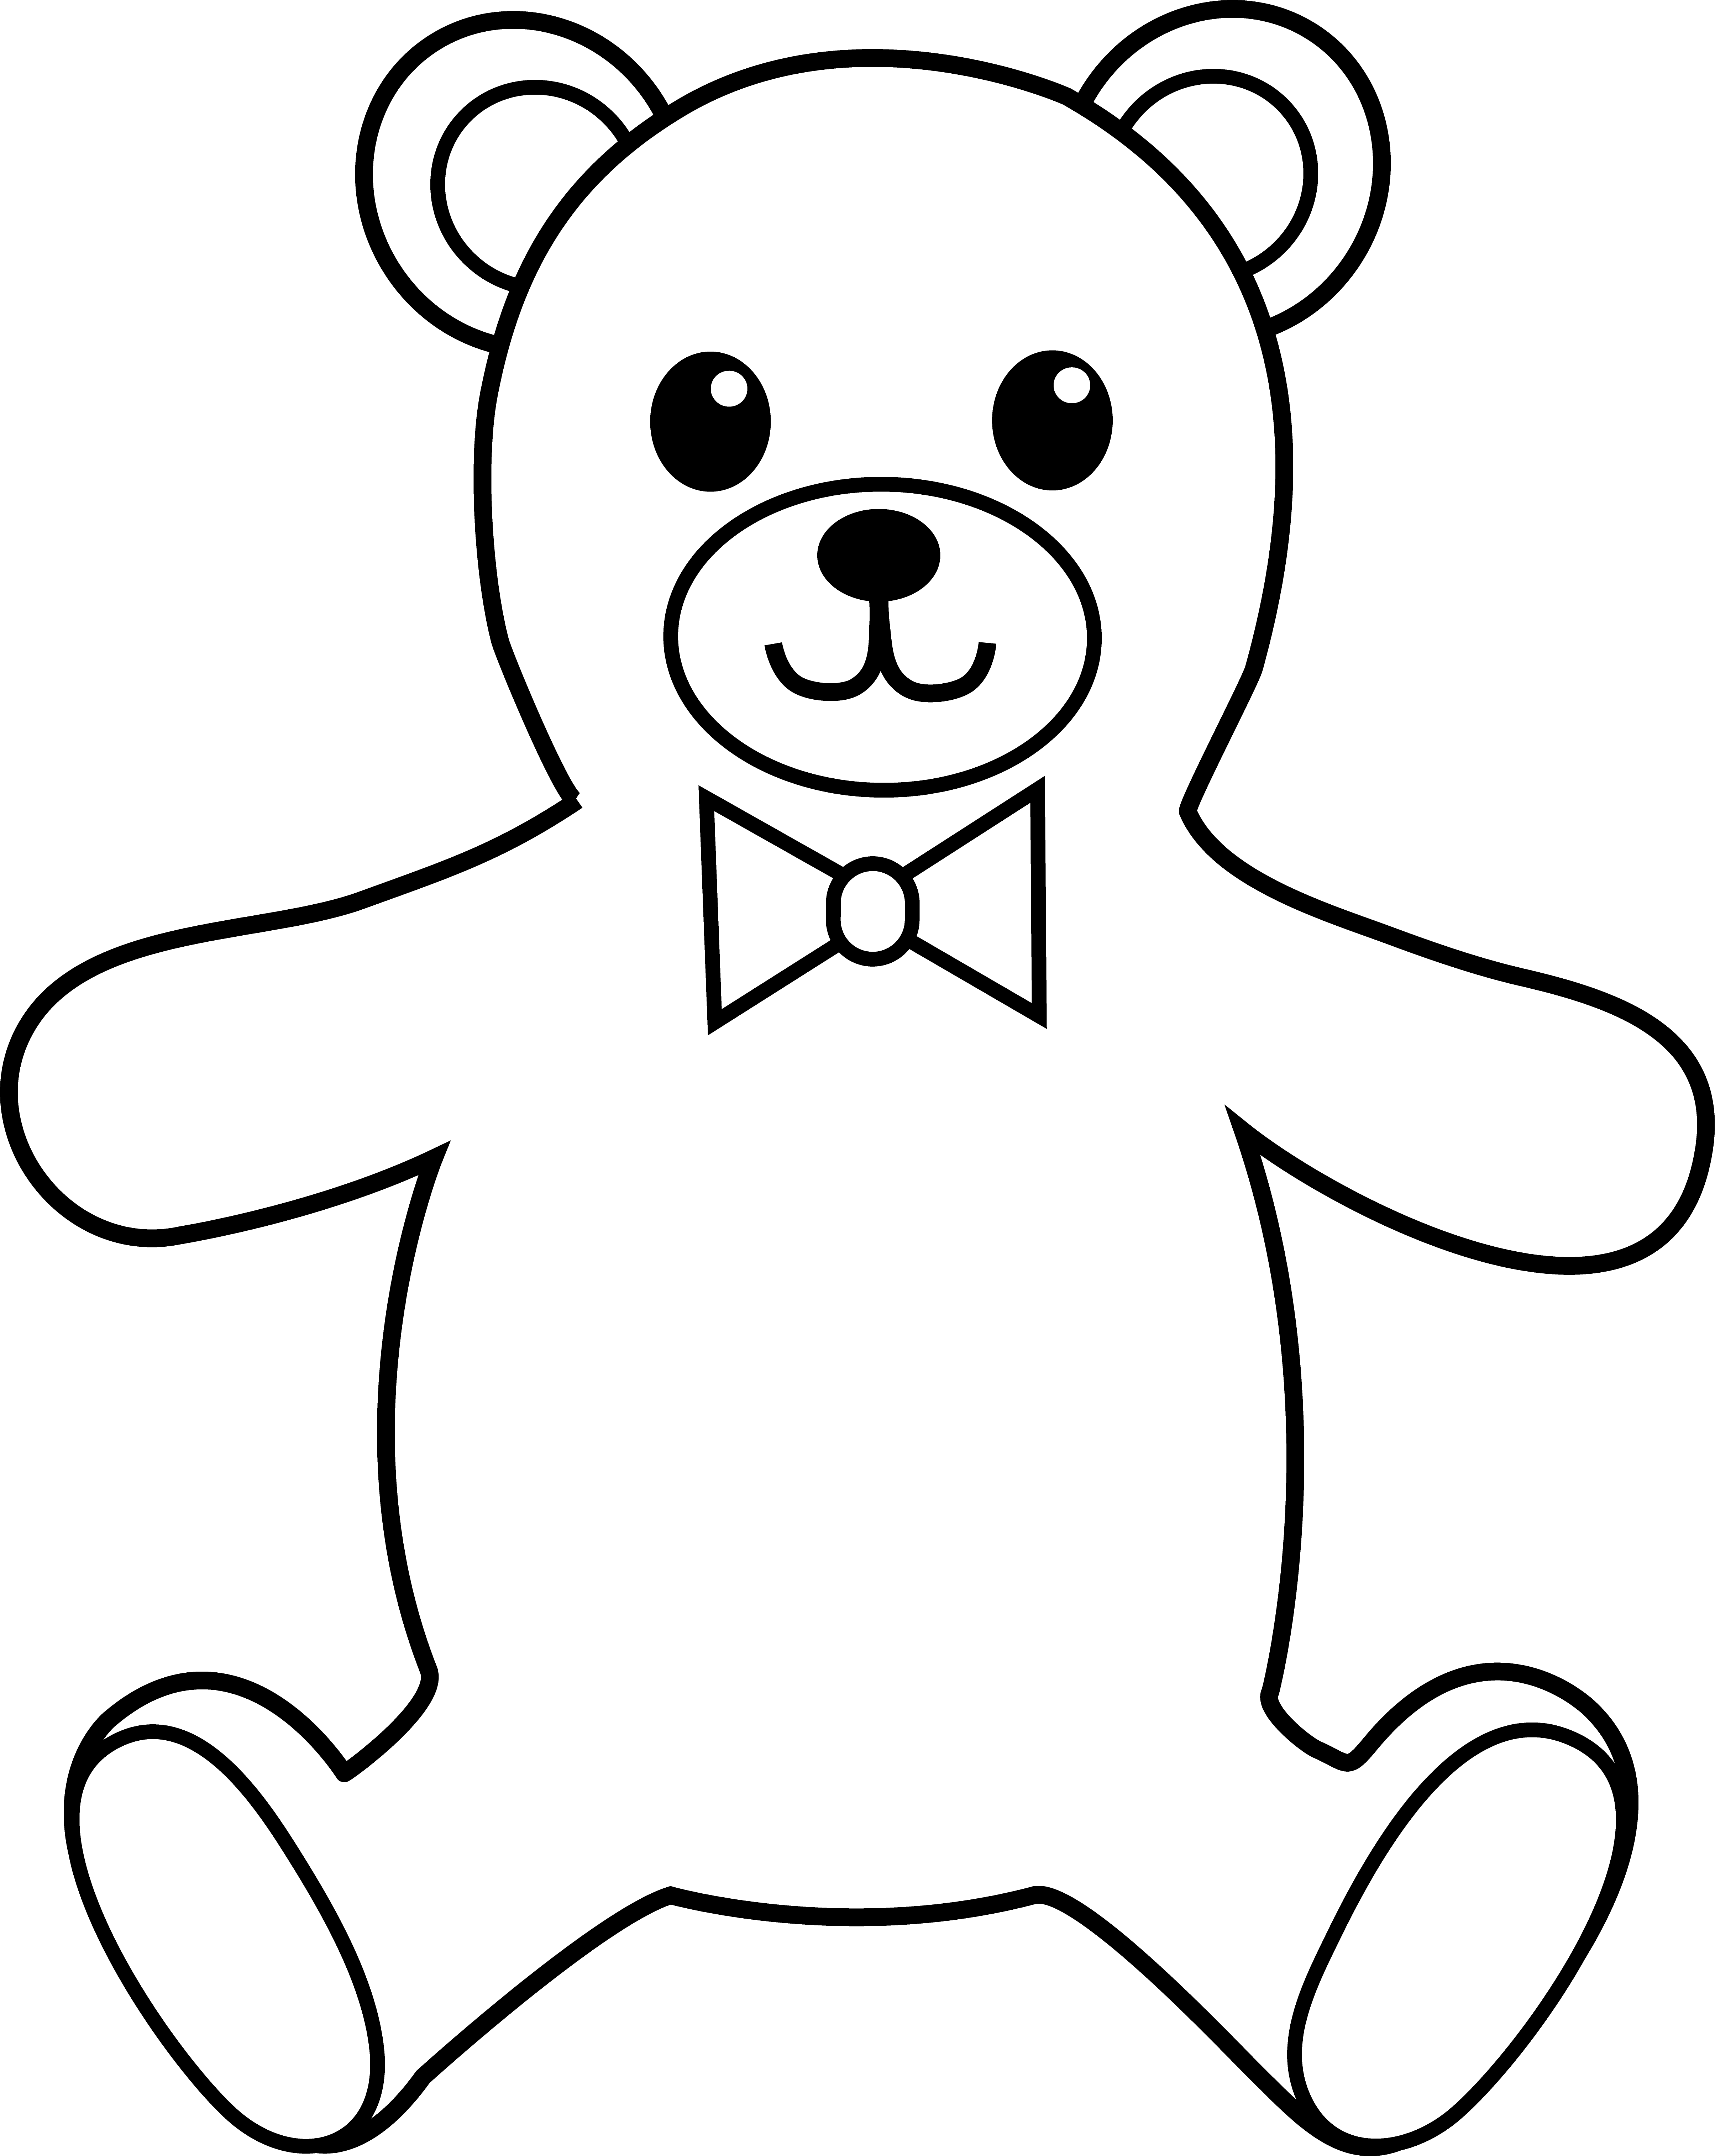 Teddy Bear Black And White Teddy Bear Black And White Free